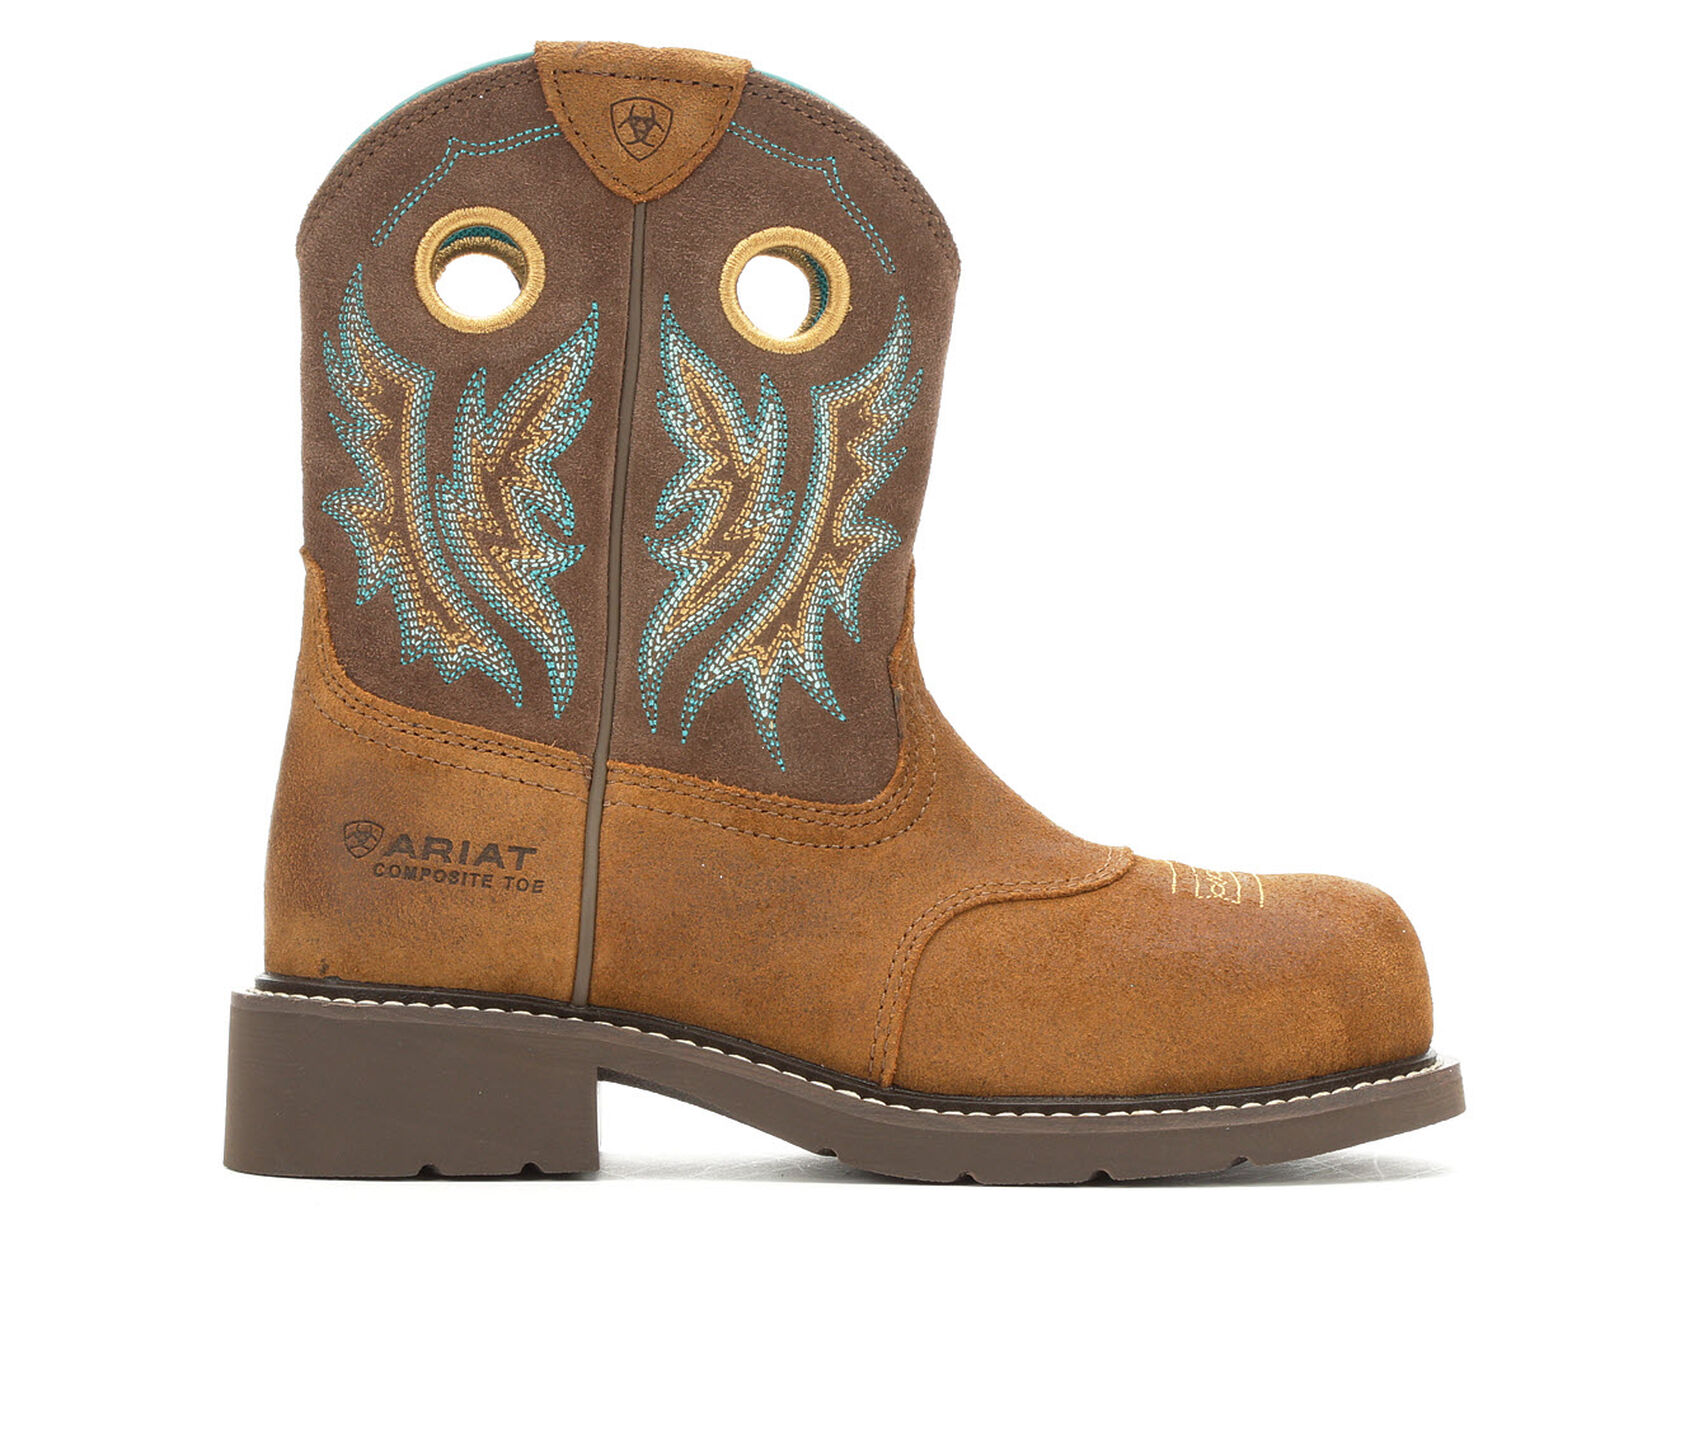 22cdf01f5c5 Women's Ariat Fatbaby Cowgirl Composite Toe Work Boots